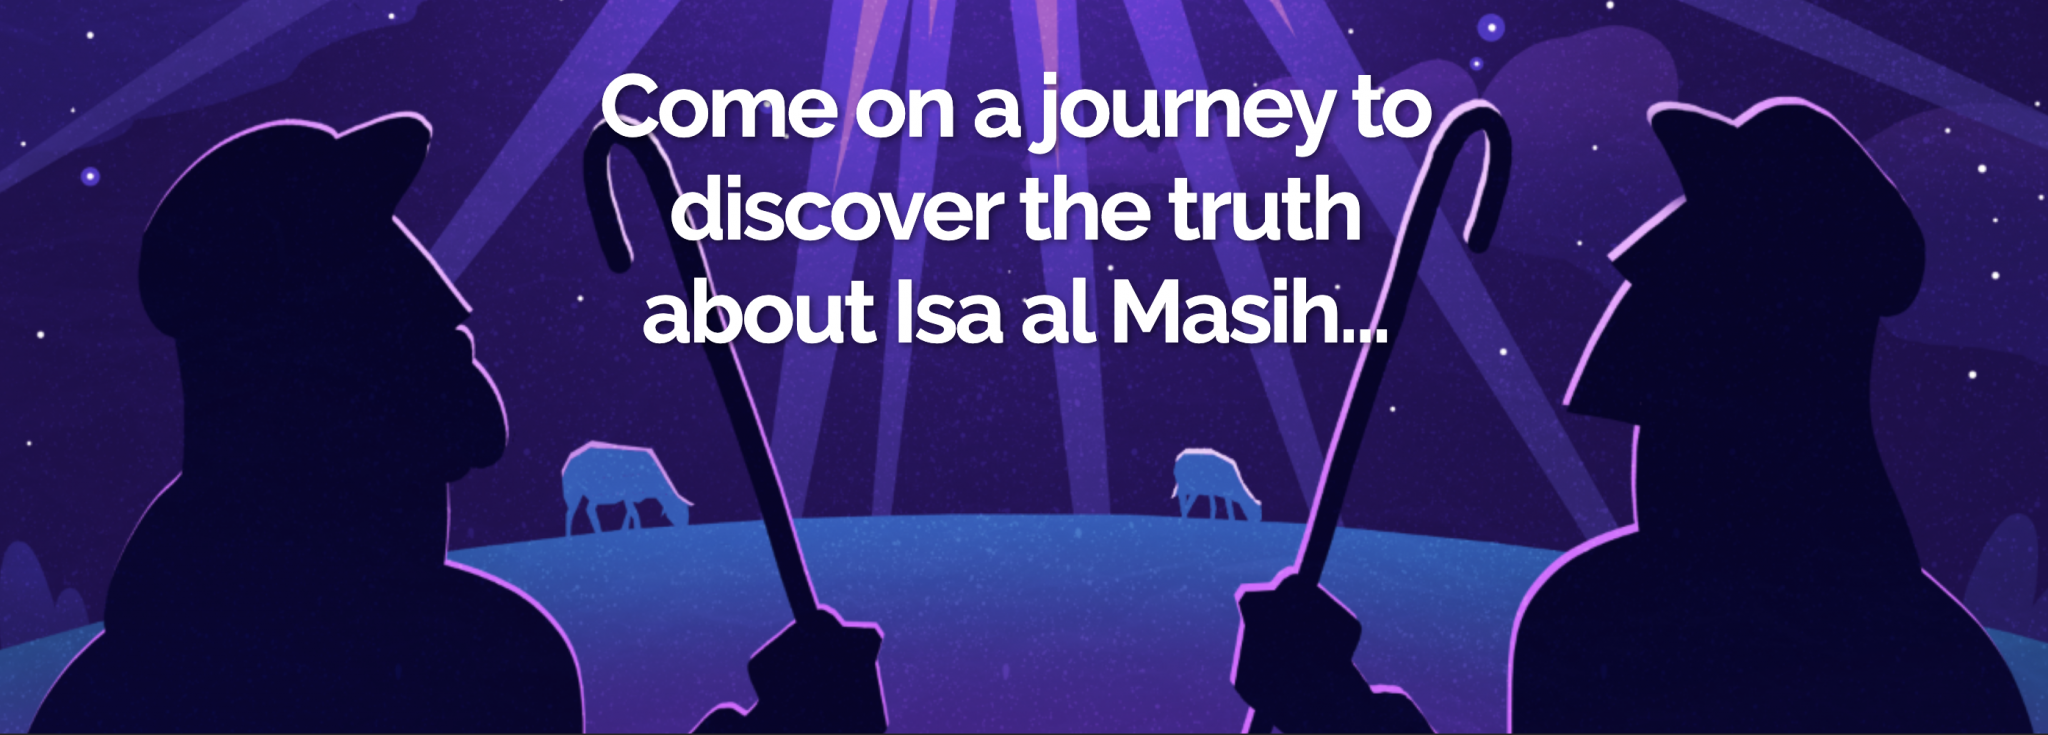 Discover the Truth about Isa al Masih (Jesus Christ)